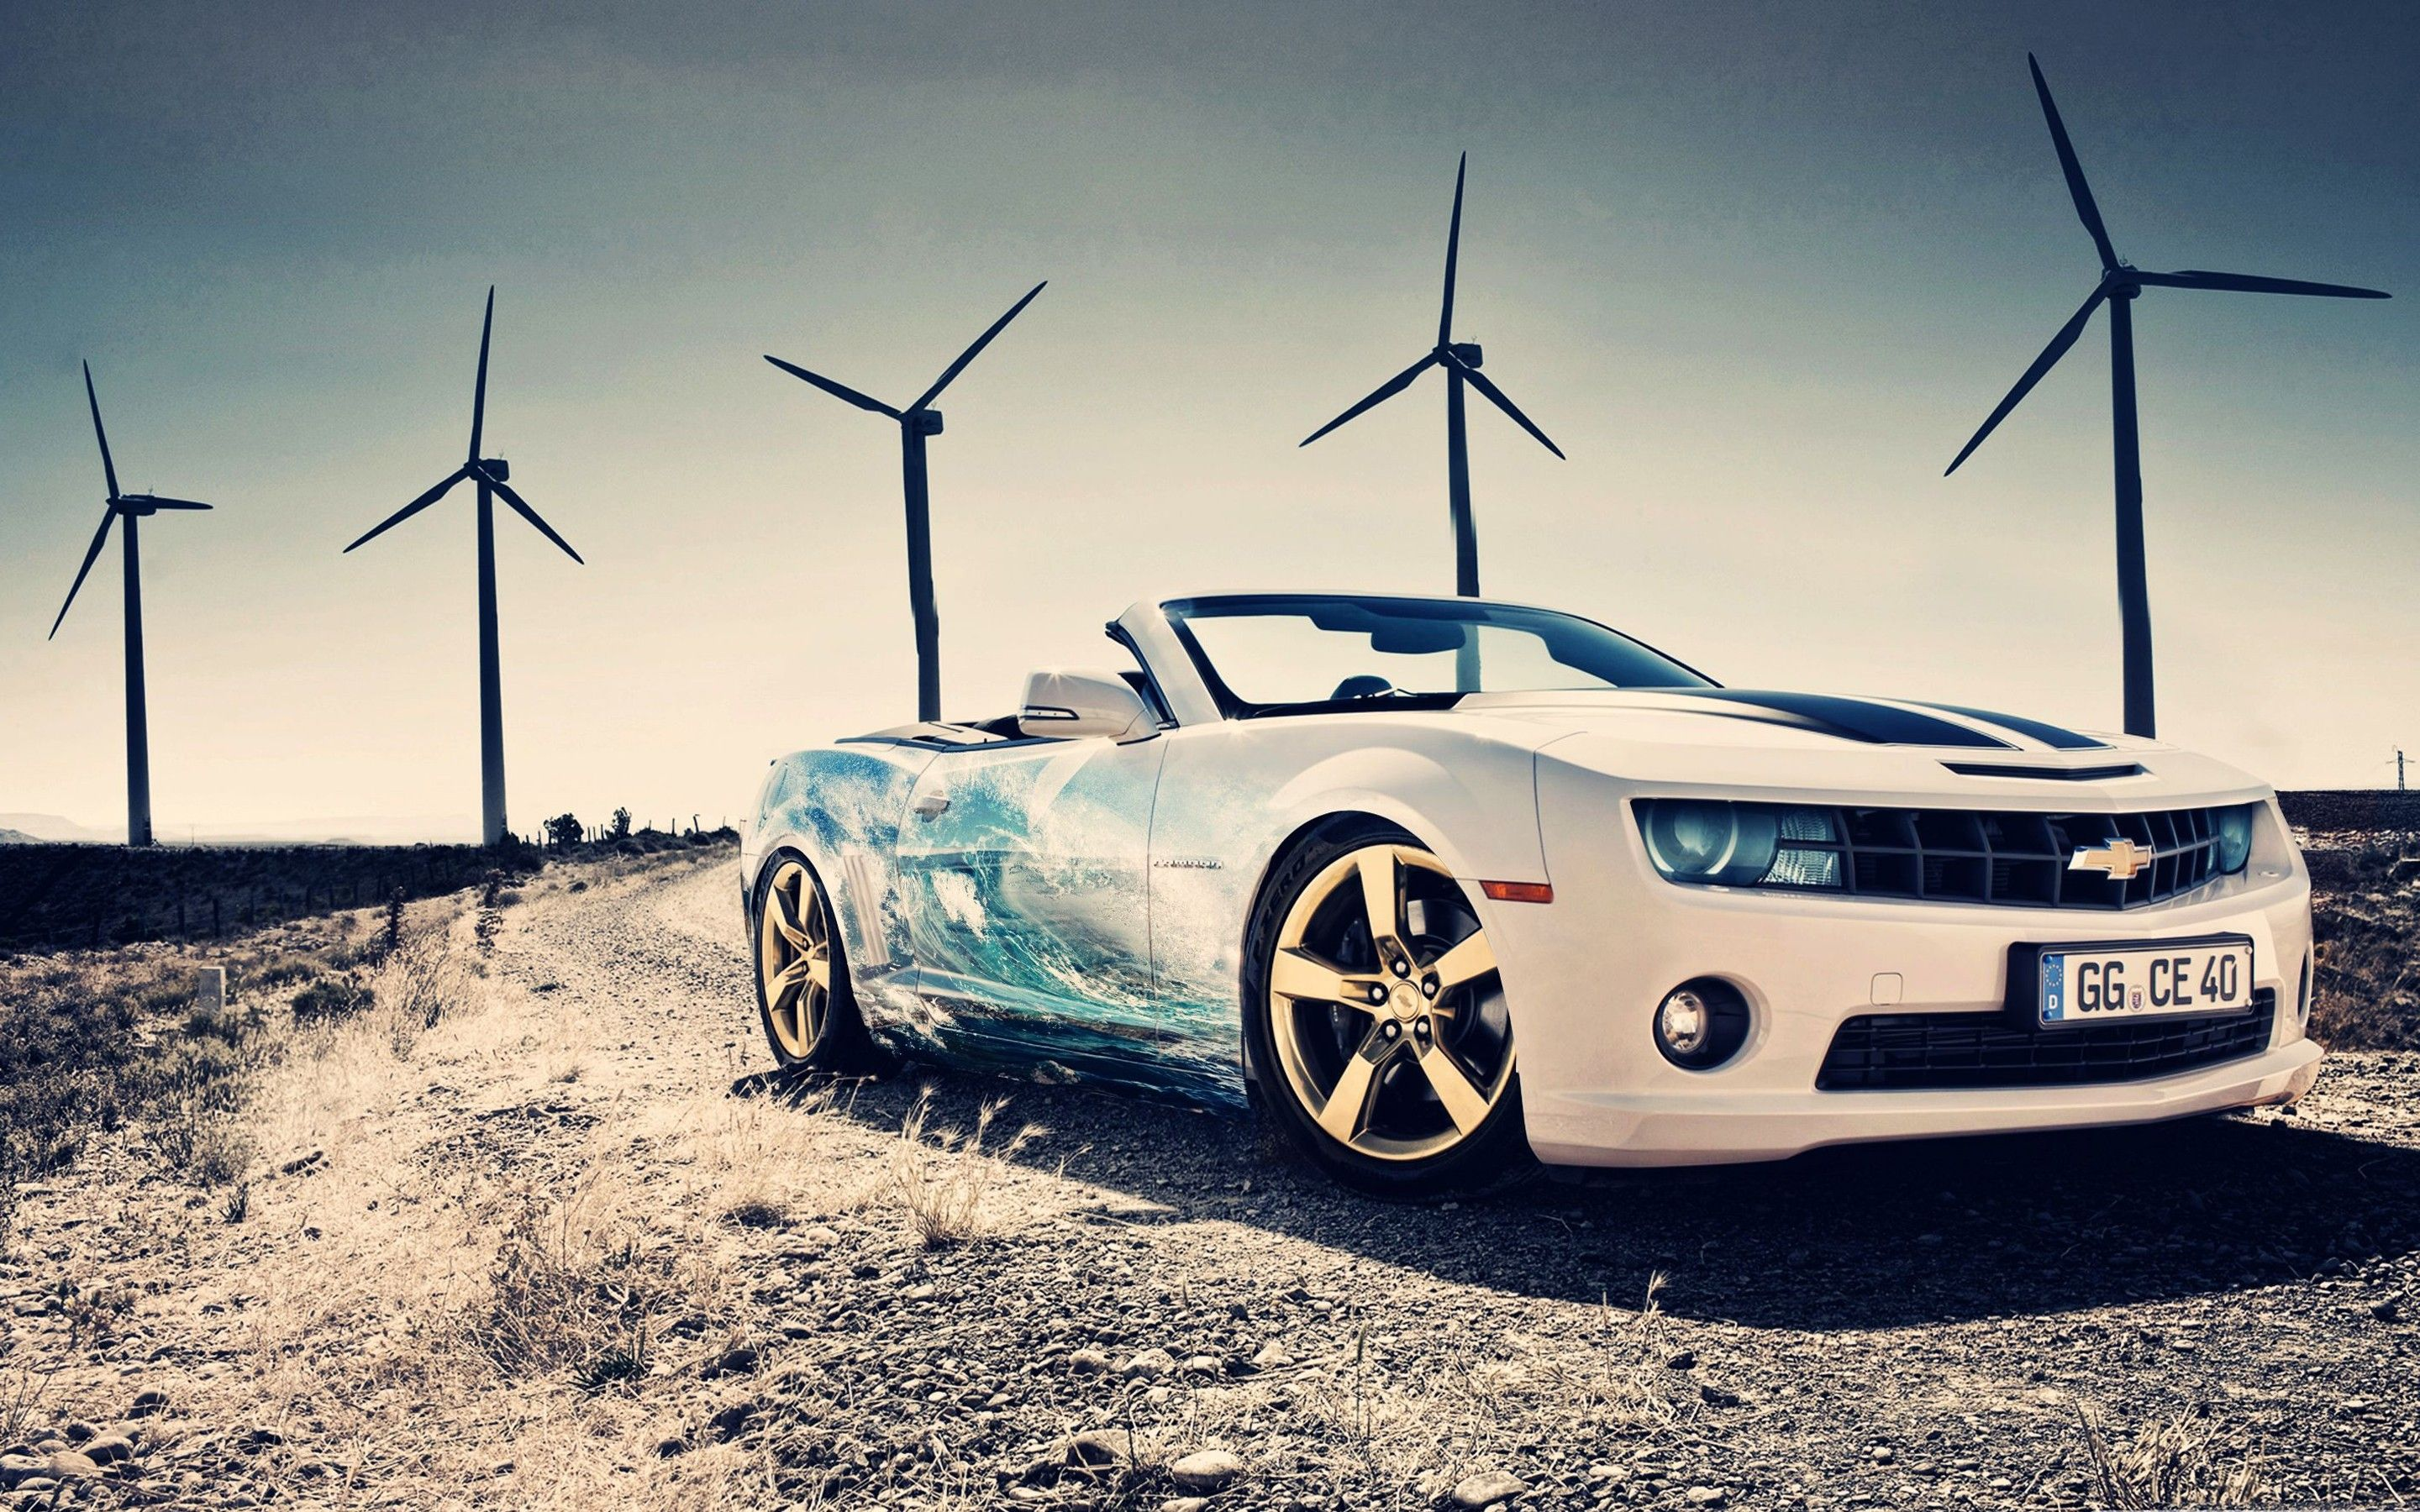 hd wallpapers desktop car background auto datz | wallpapers